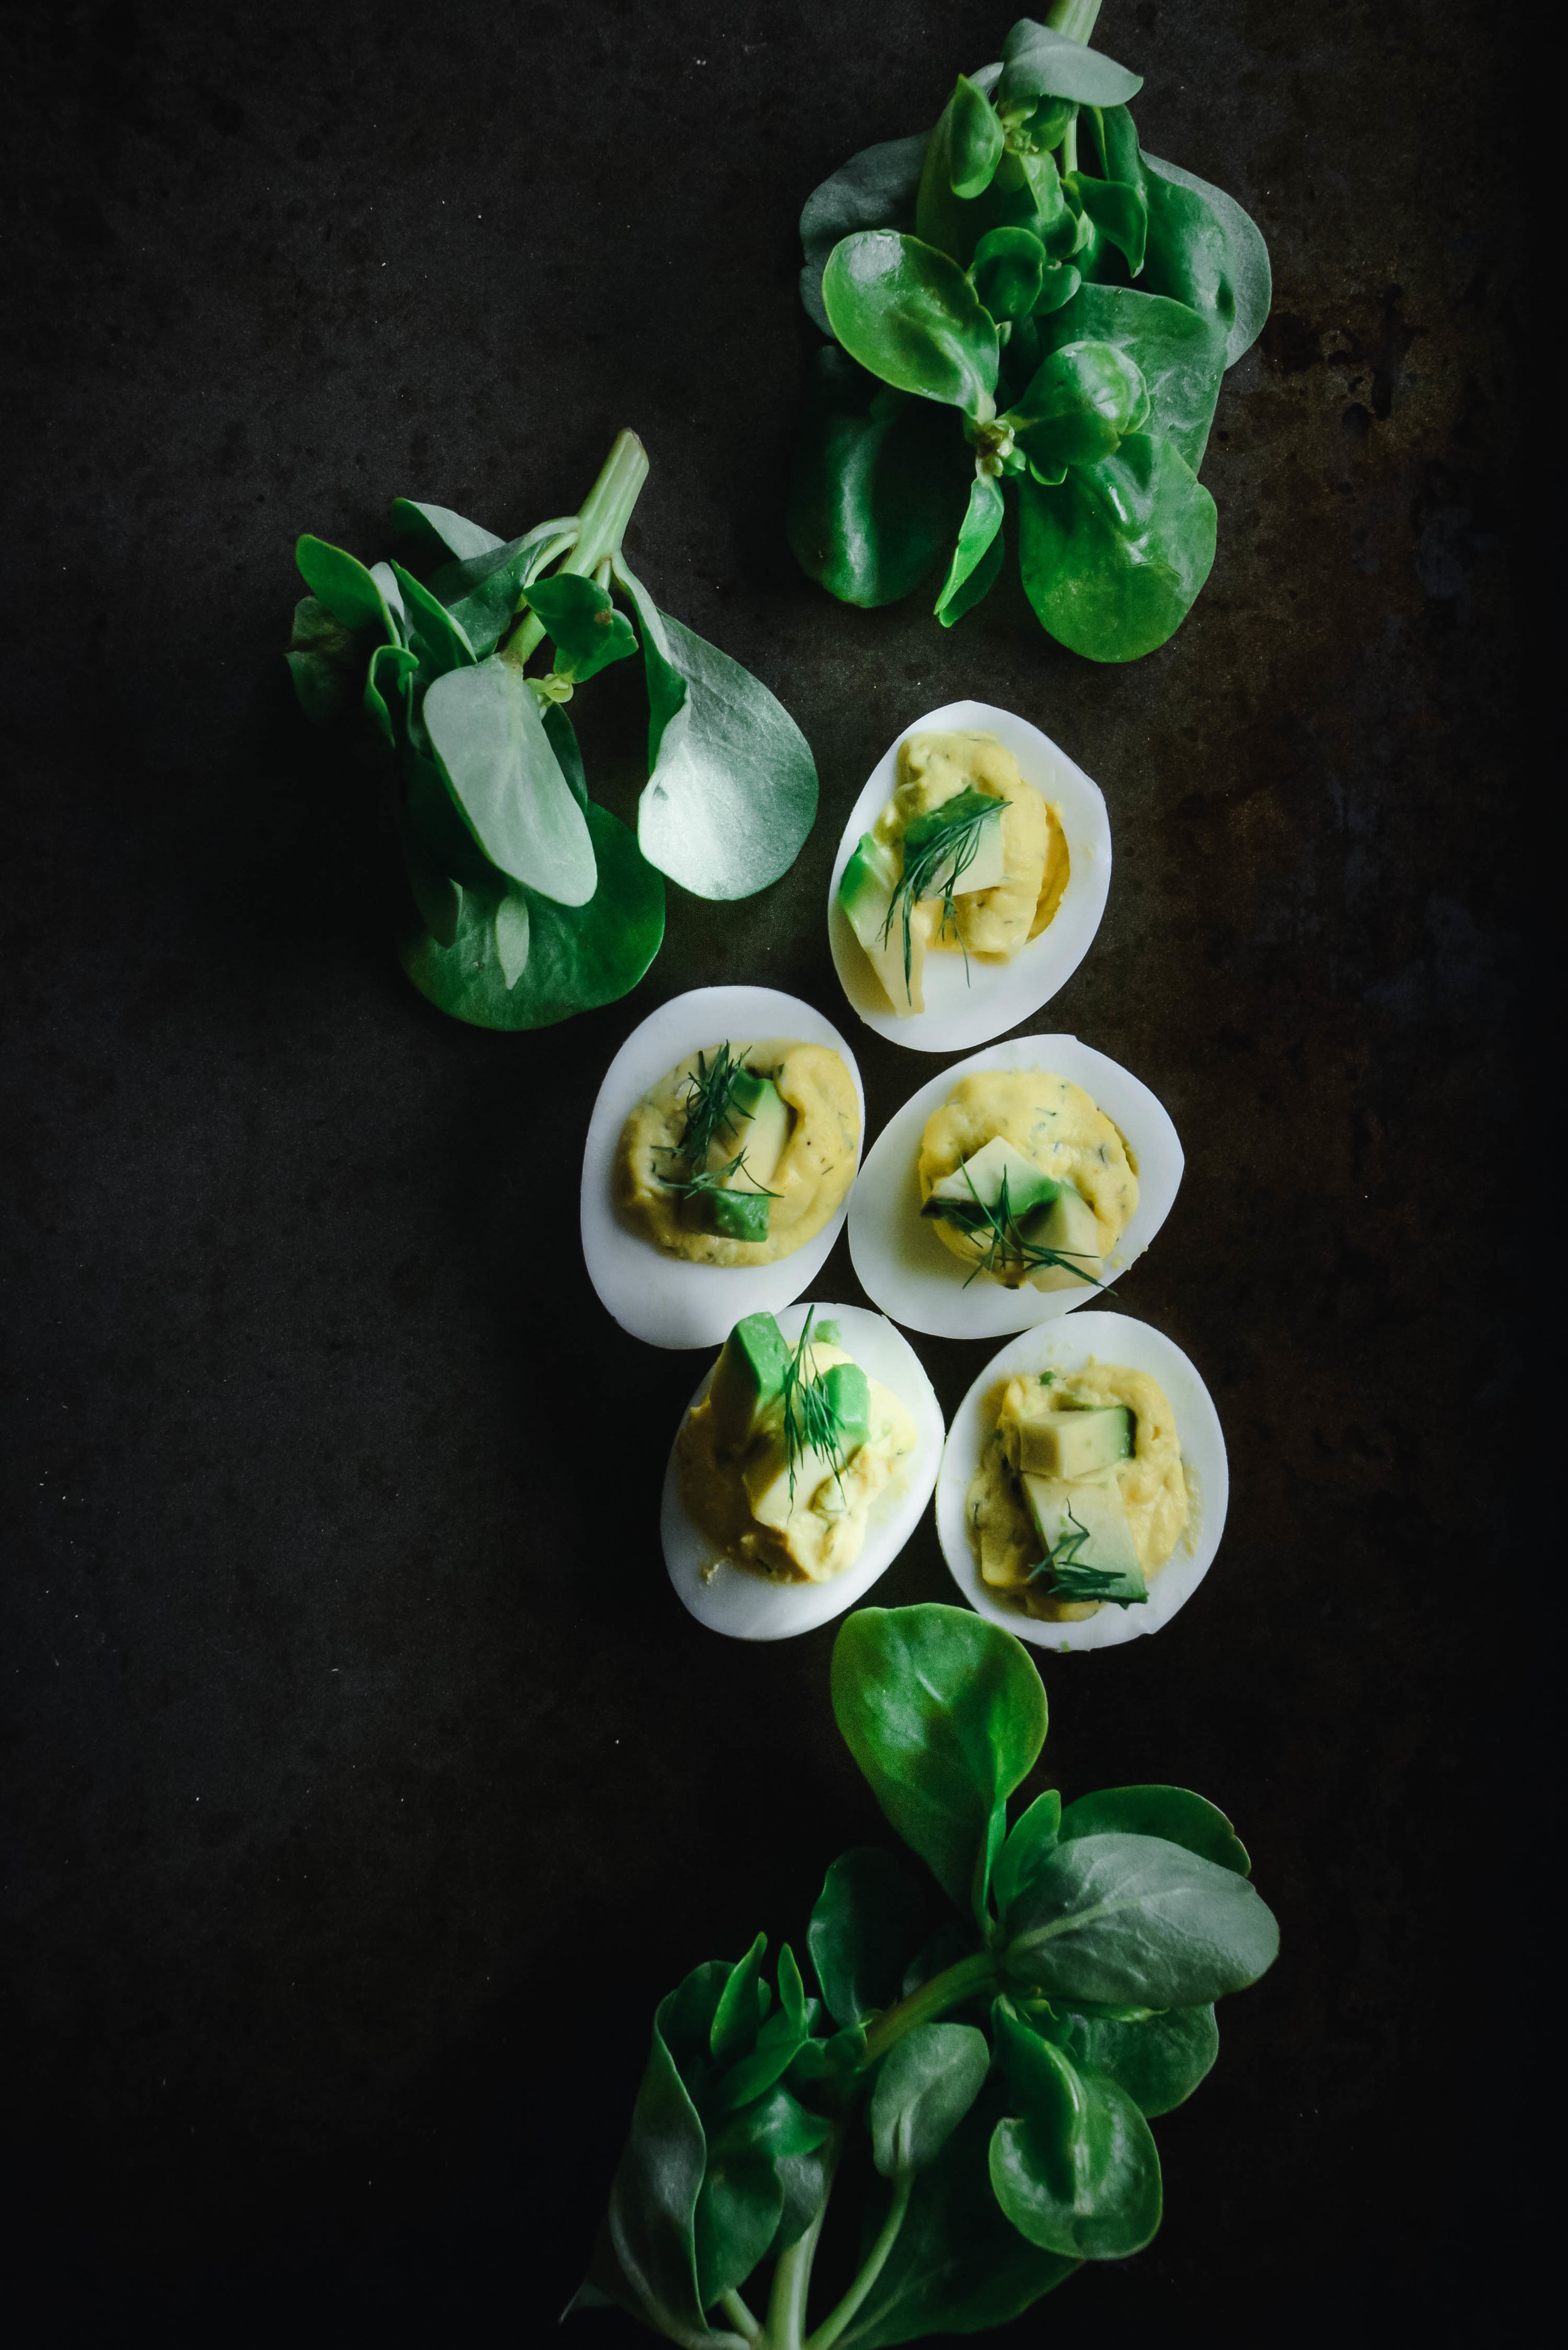 5 deviled eggs and greens